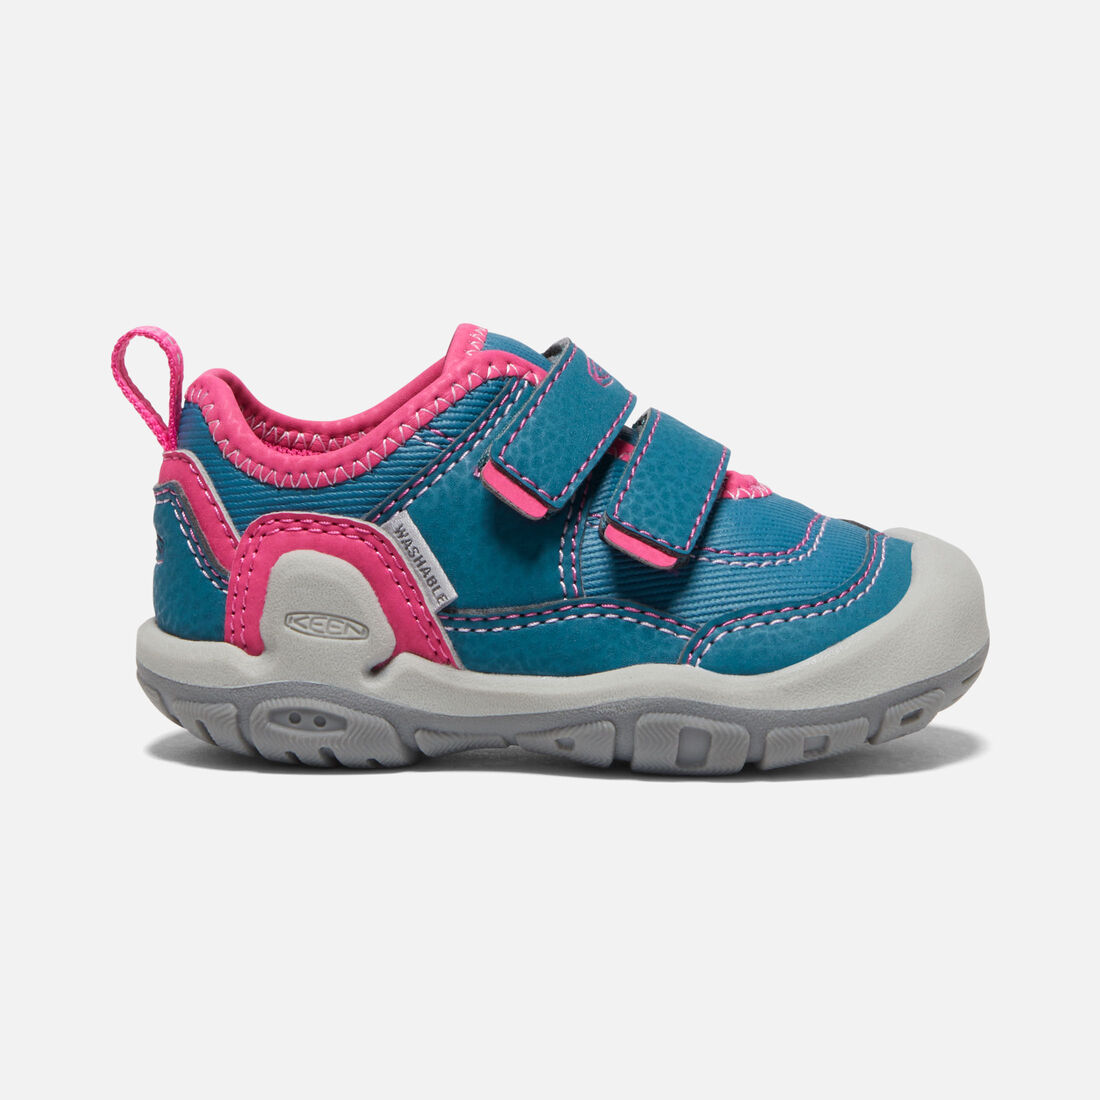 Toddlers' Knotch Hollow Double Strap Sneaker in Blue Coral/Pink Peacock - large view.